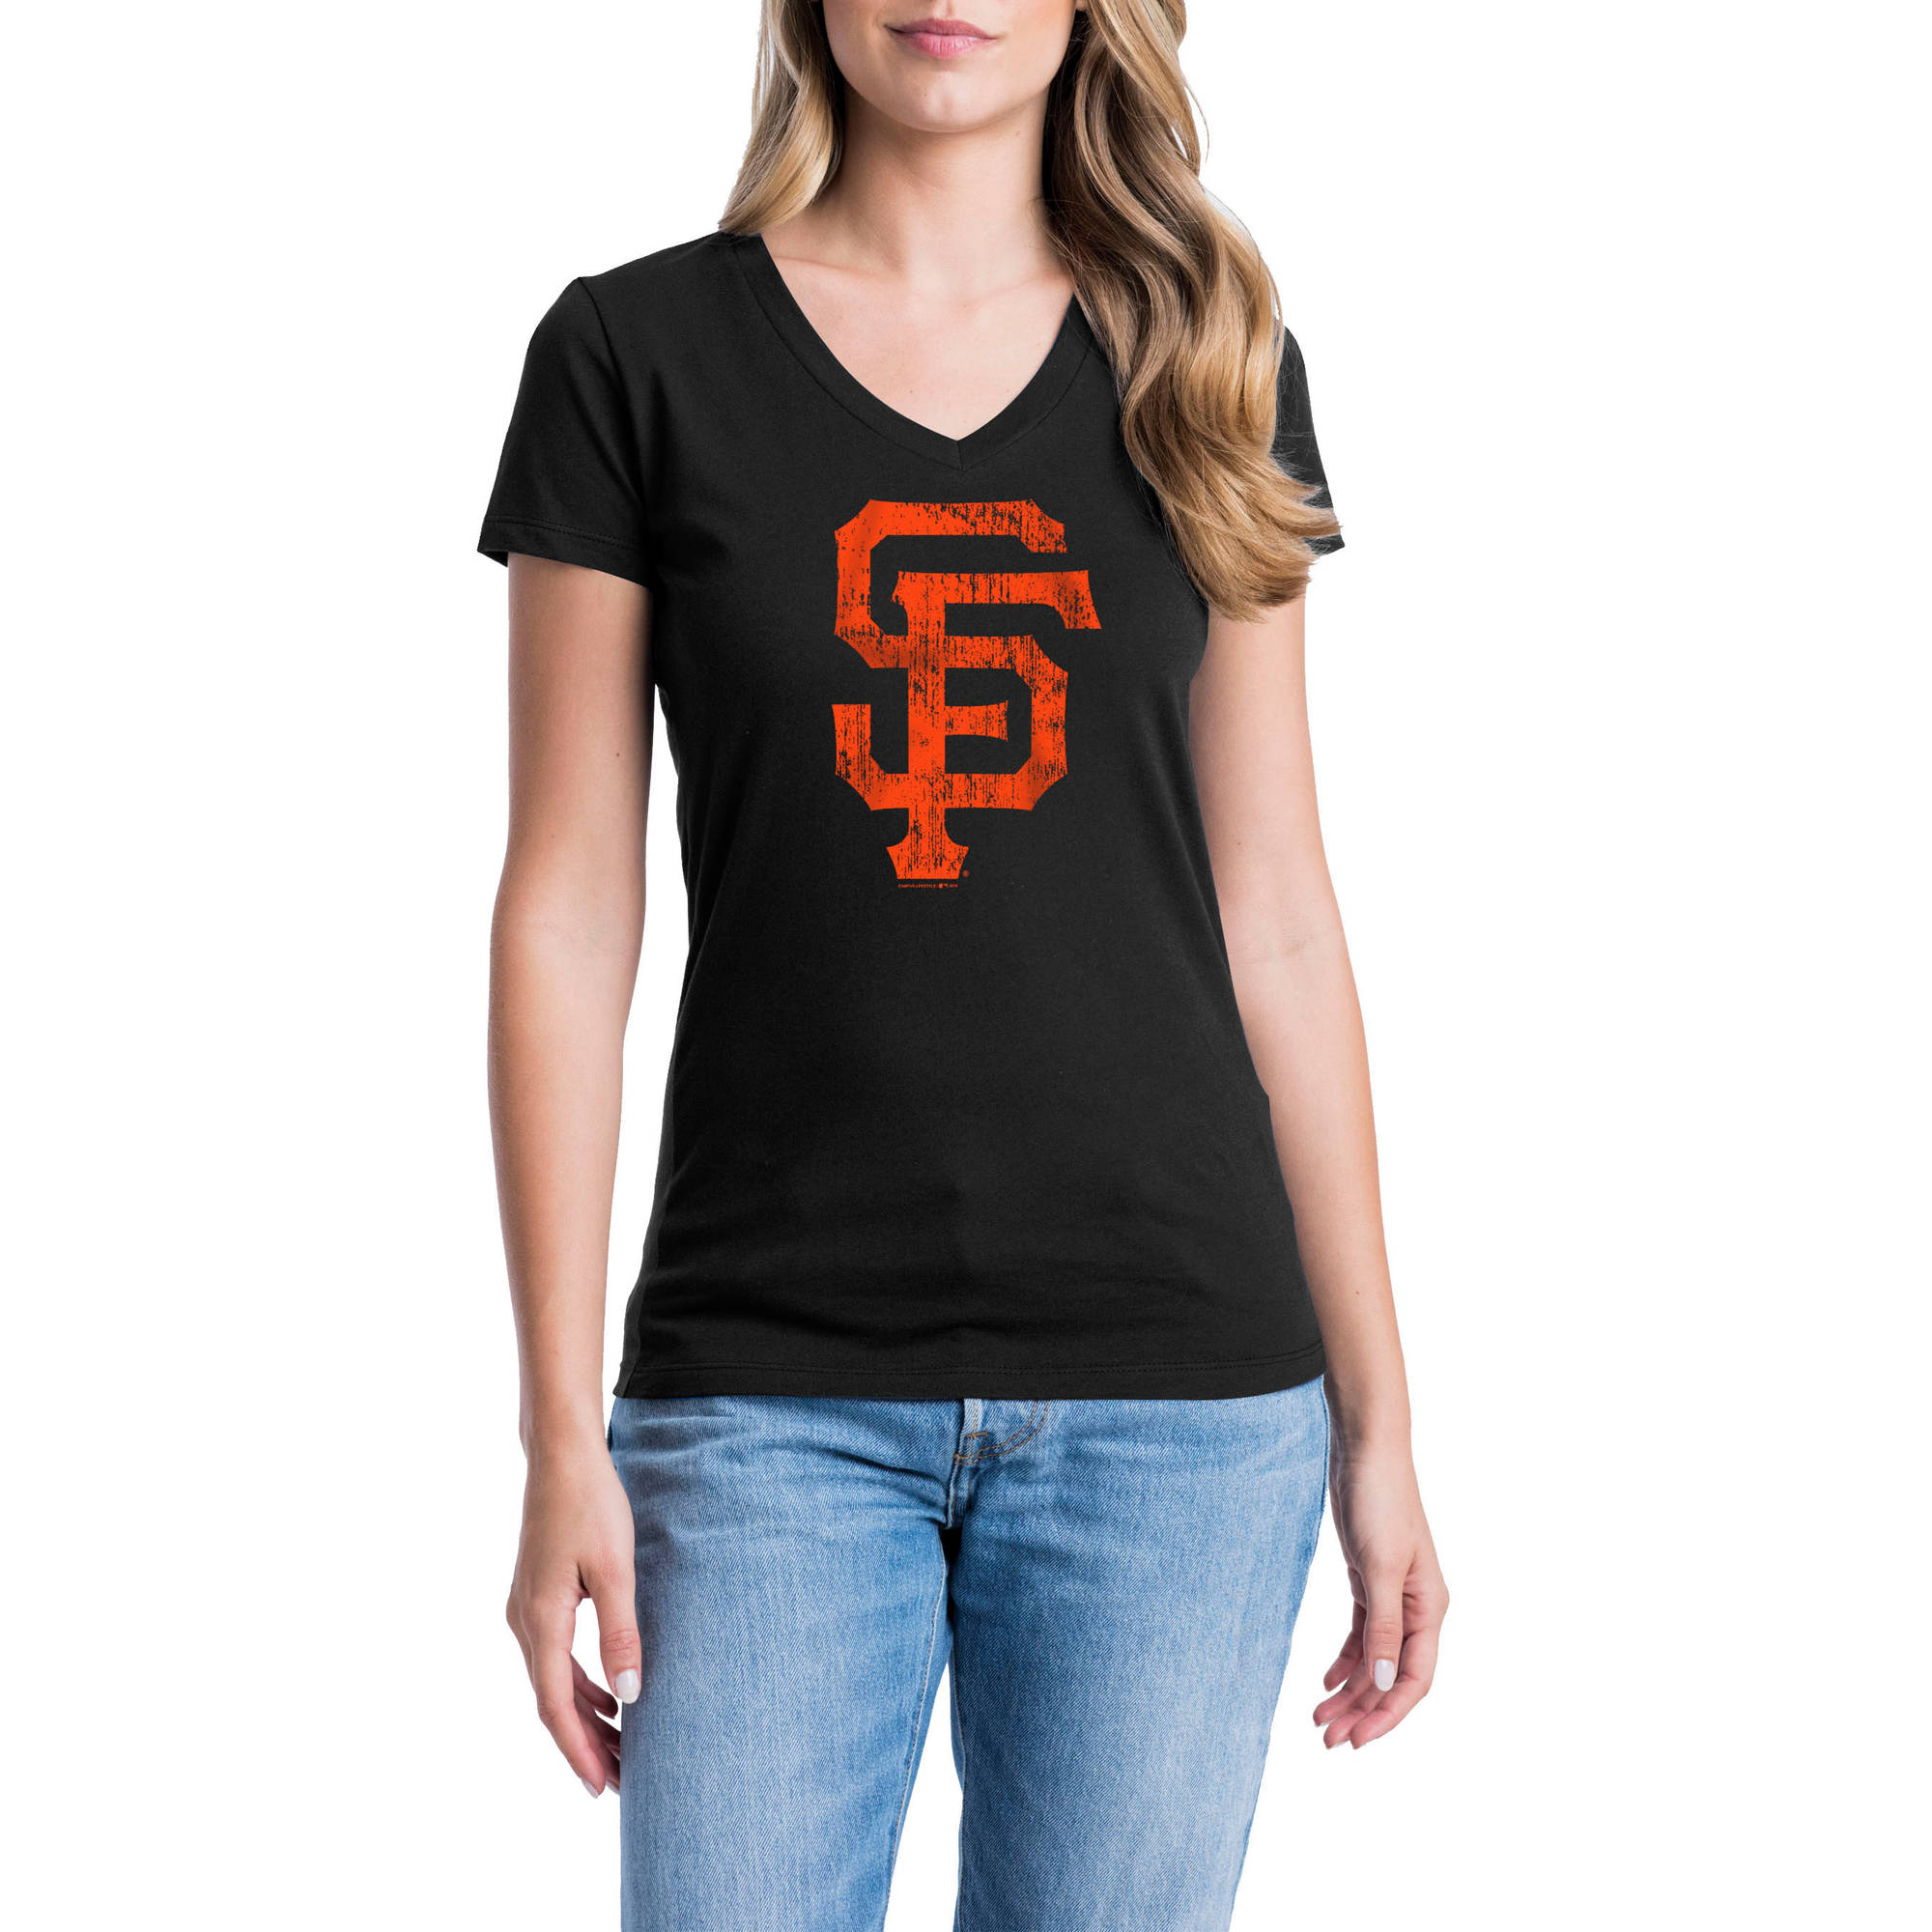 San Francisco Giants Womens Short Sleeve Graphic Tee